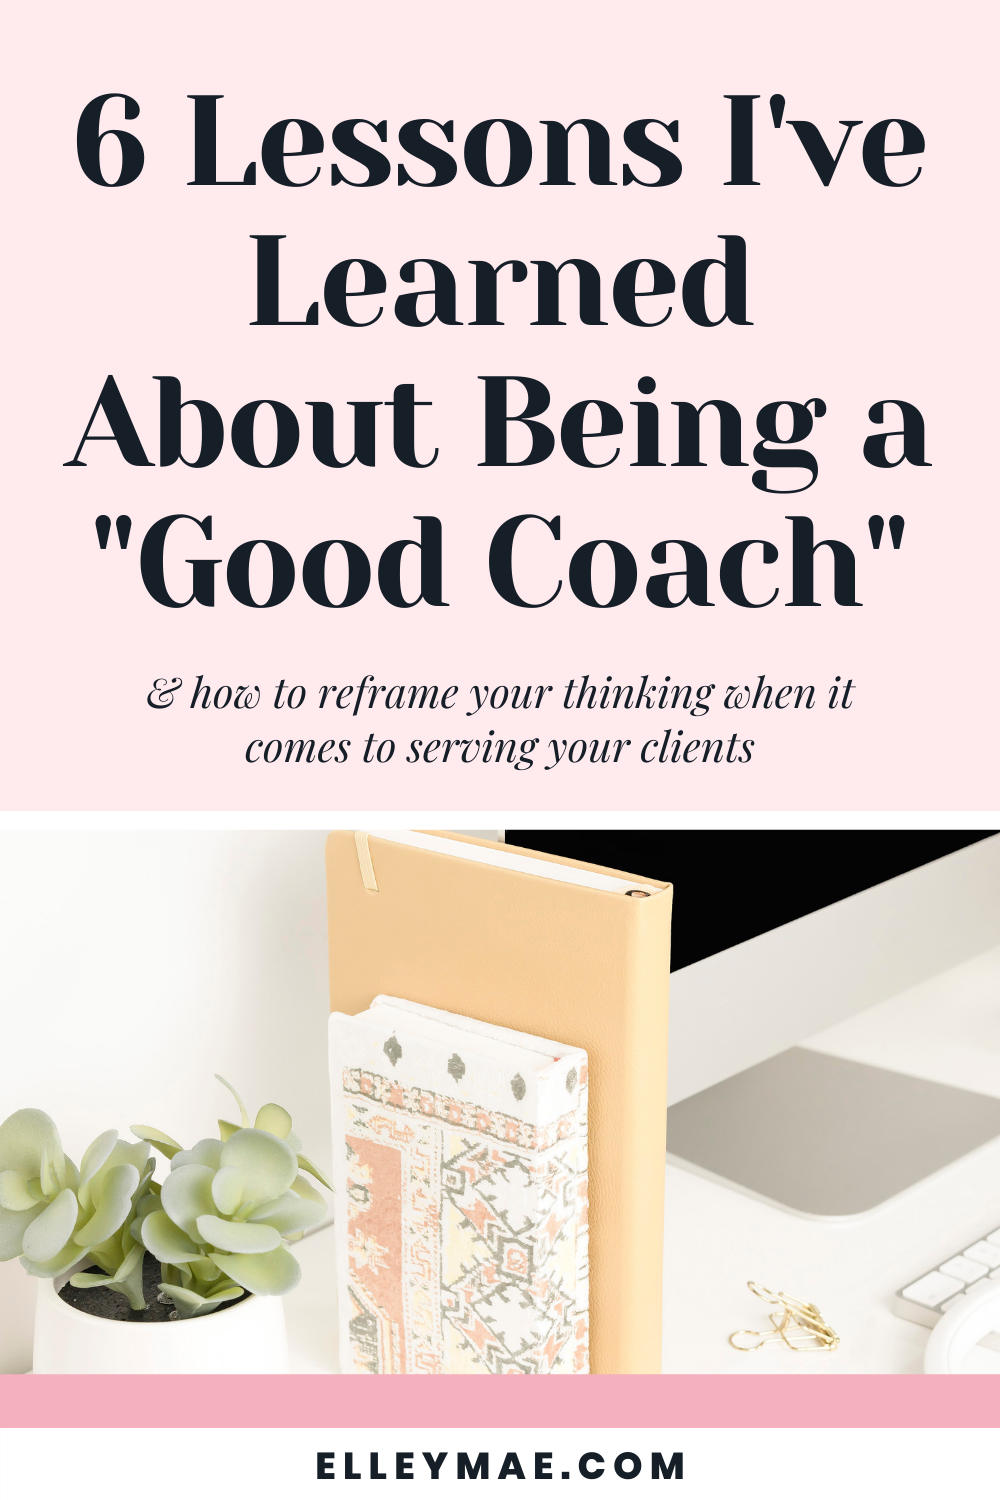 087. 6 Lessons I've Learned About Being a Good Coach